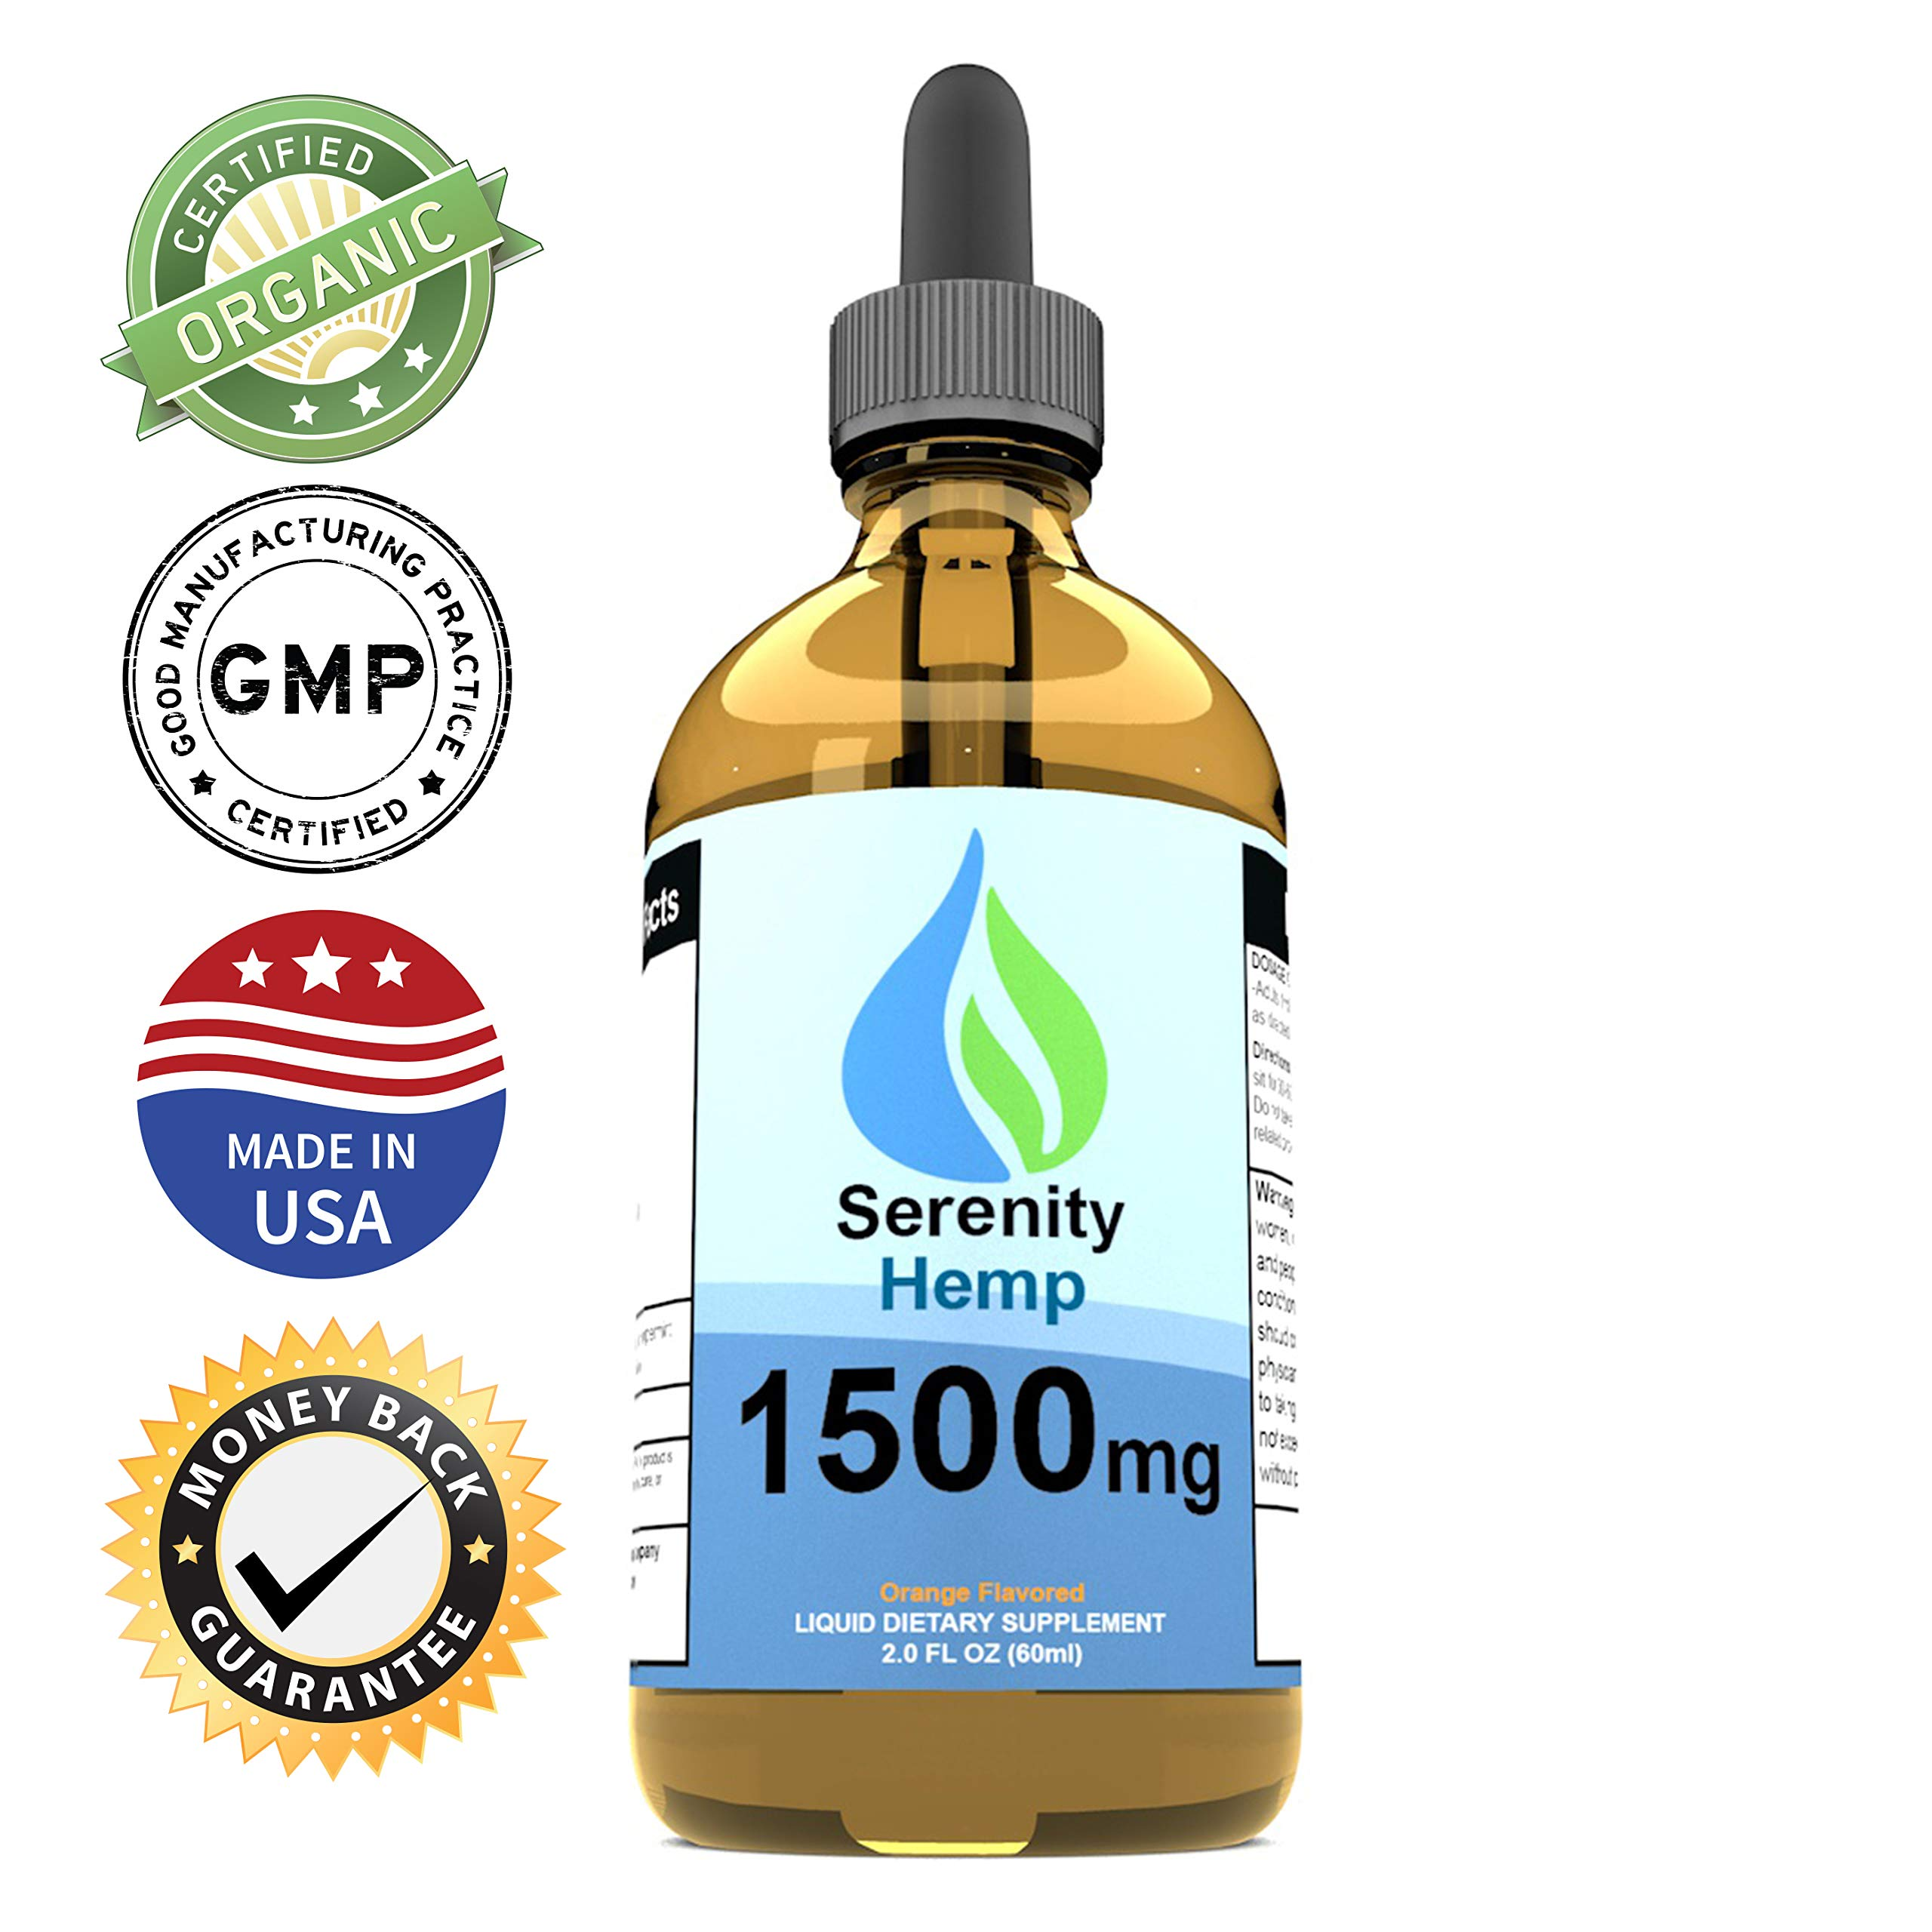 Serenity Hemp Oil - 2 fl oz 1500 mg (Orange) - Certified Organic - Relief for Stress, Inflammation, Pain, Sleep, Anxiety, Depression, Nausea - Rich in Vitamin E, Vitamin B, Omega 3,6,9 and More!